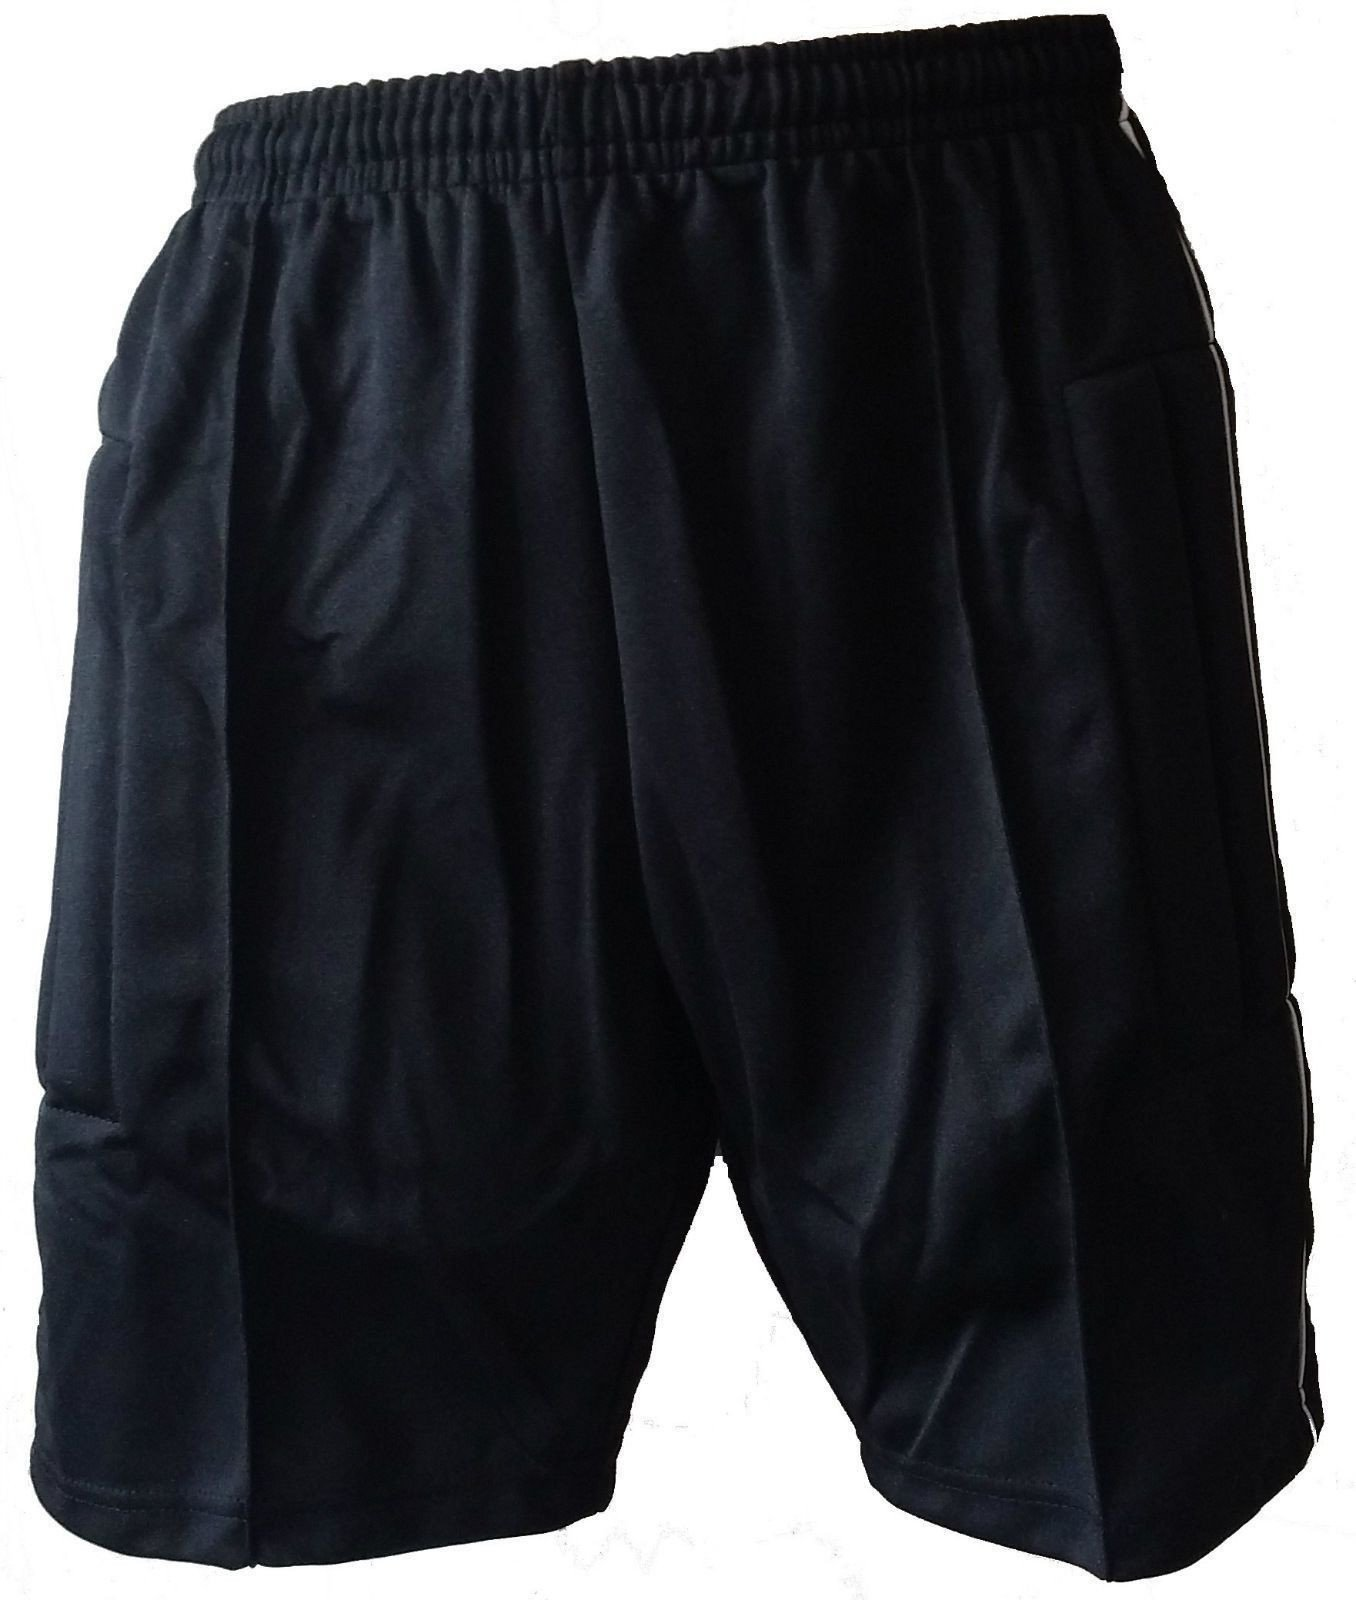 CNT Soccer Goalkeeper Shorts Padded Black Goalie Small